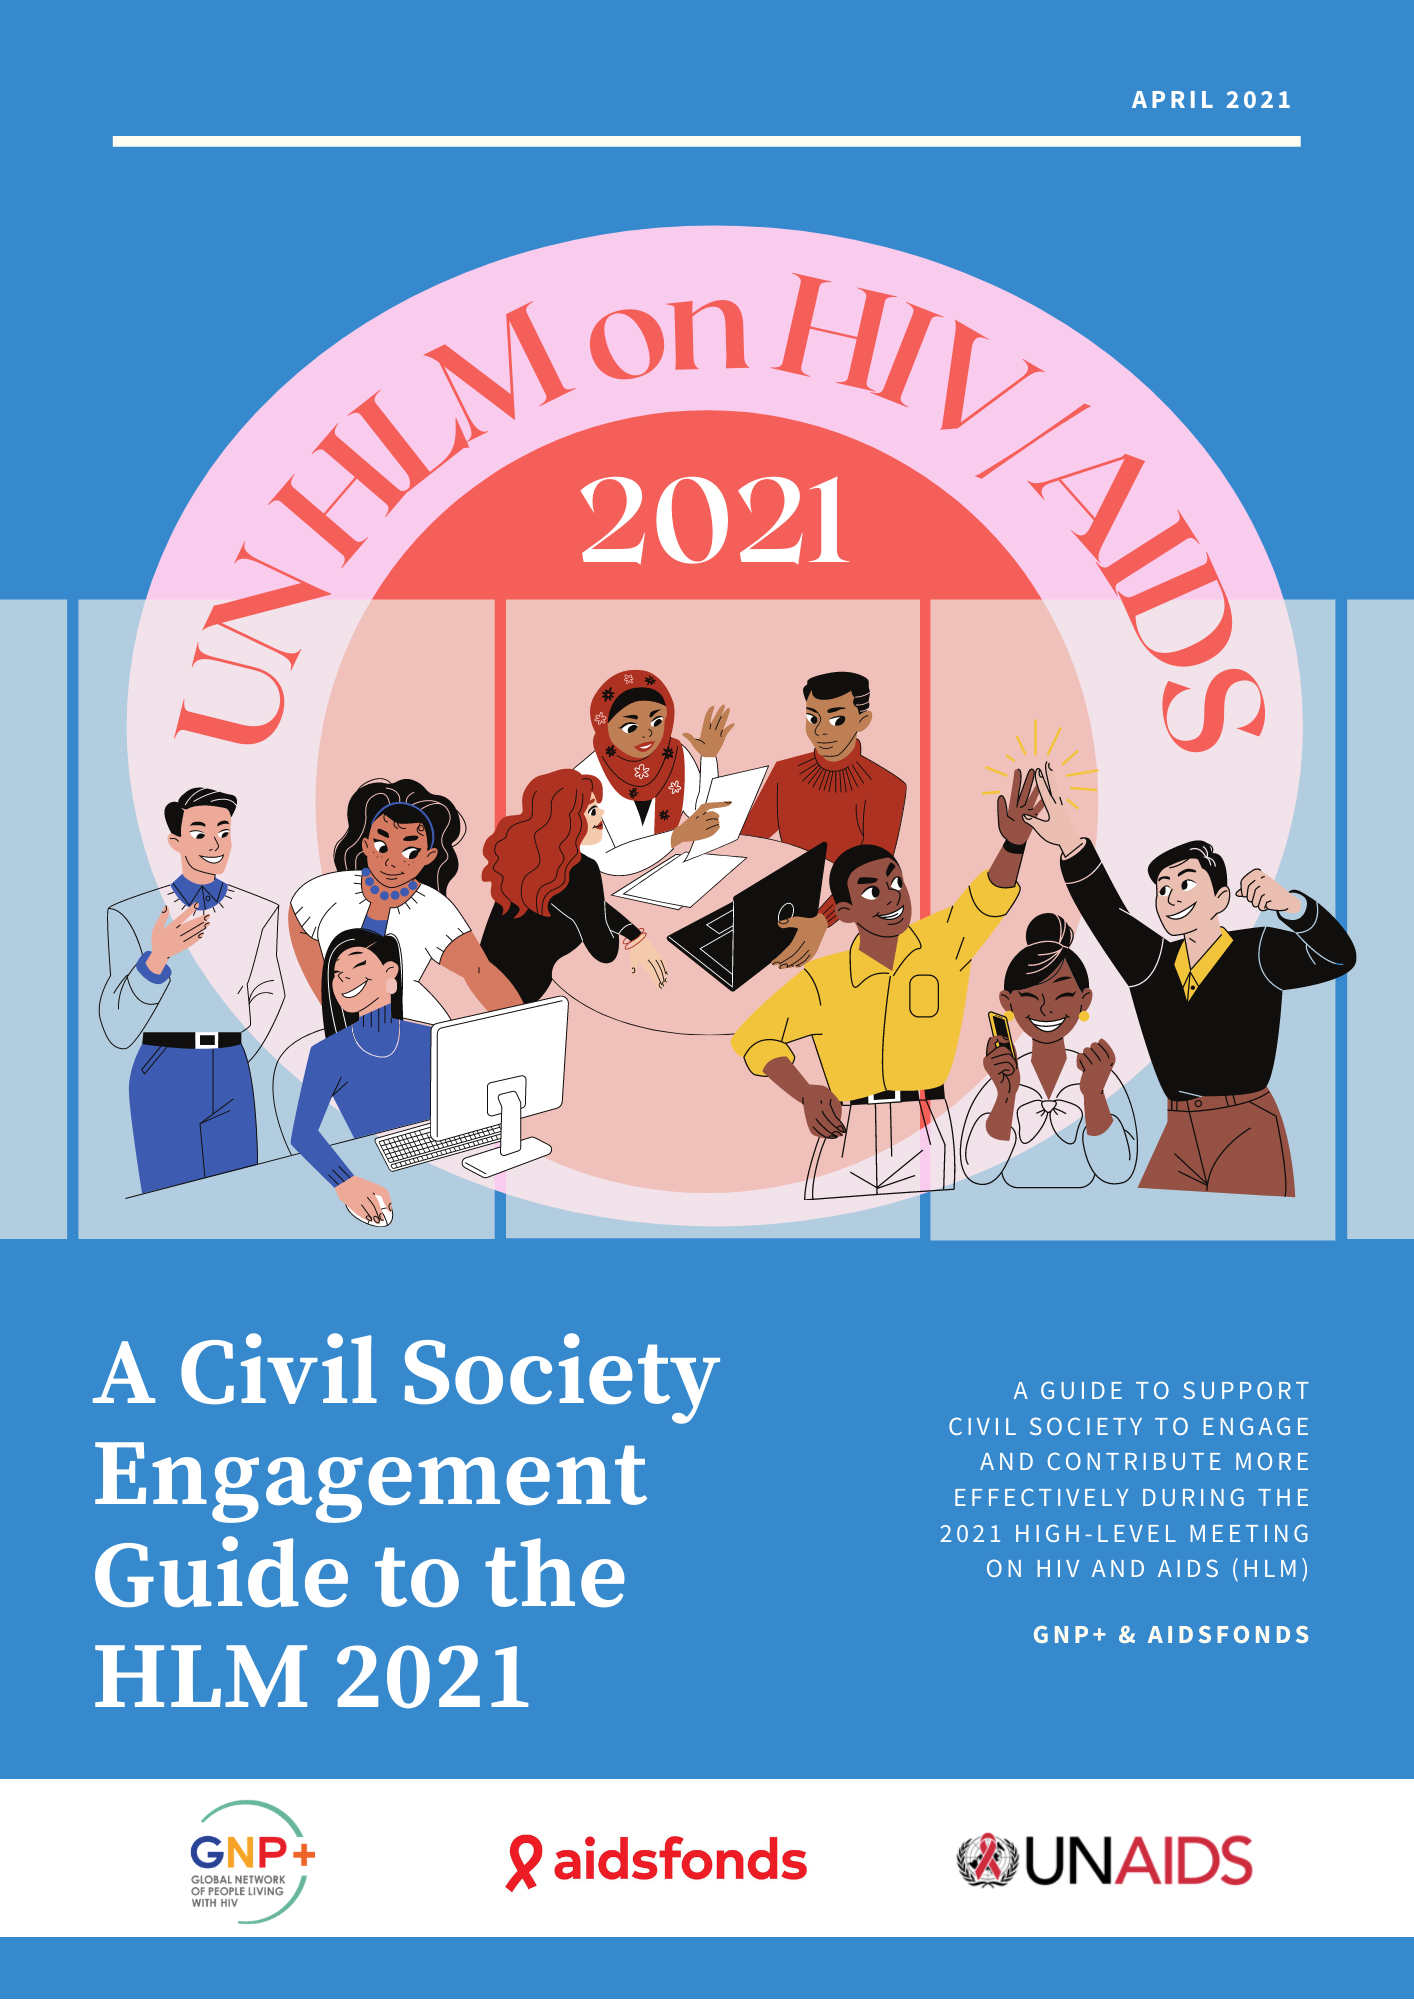 A Civil Society Engagement Guide to the HLM 2021